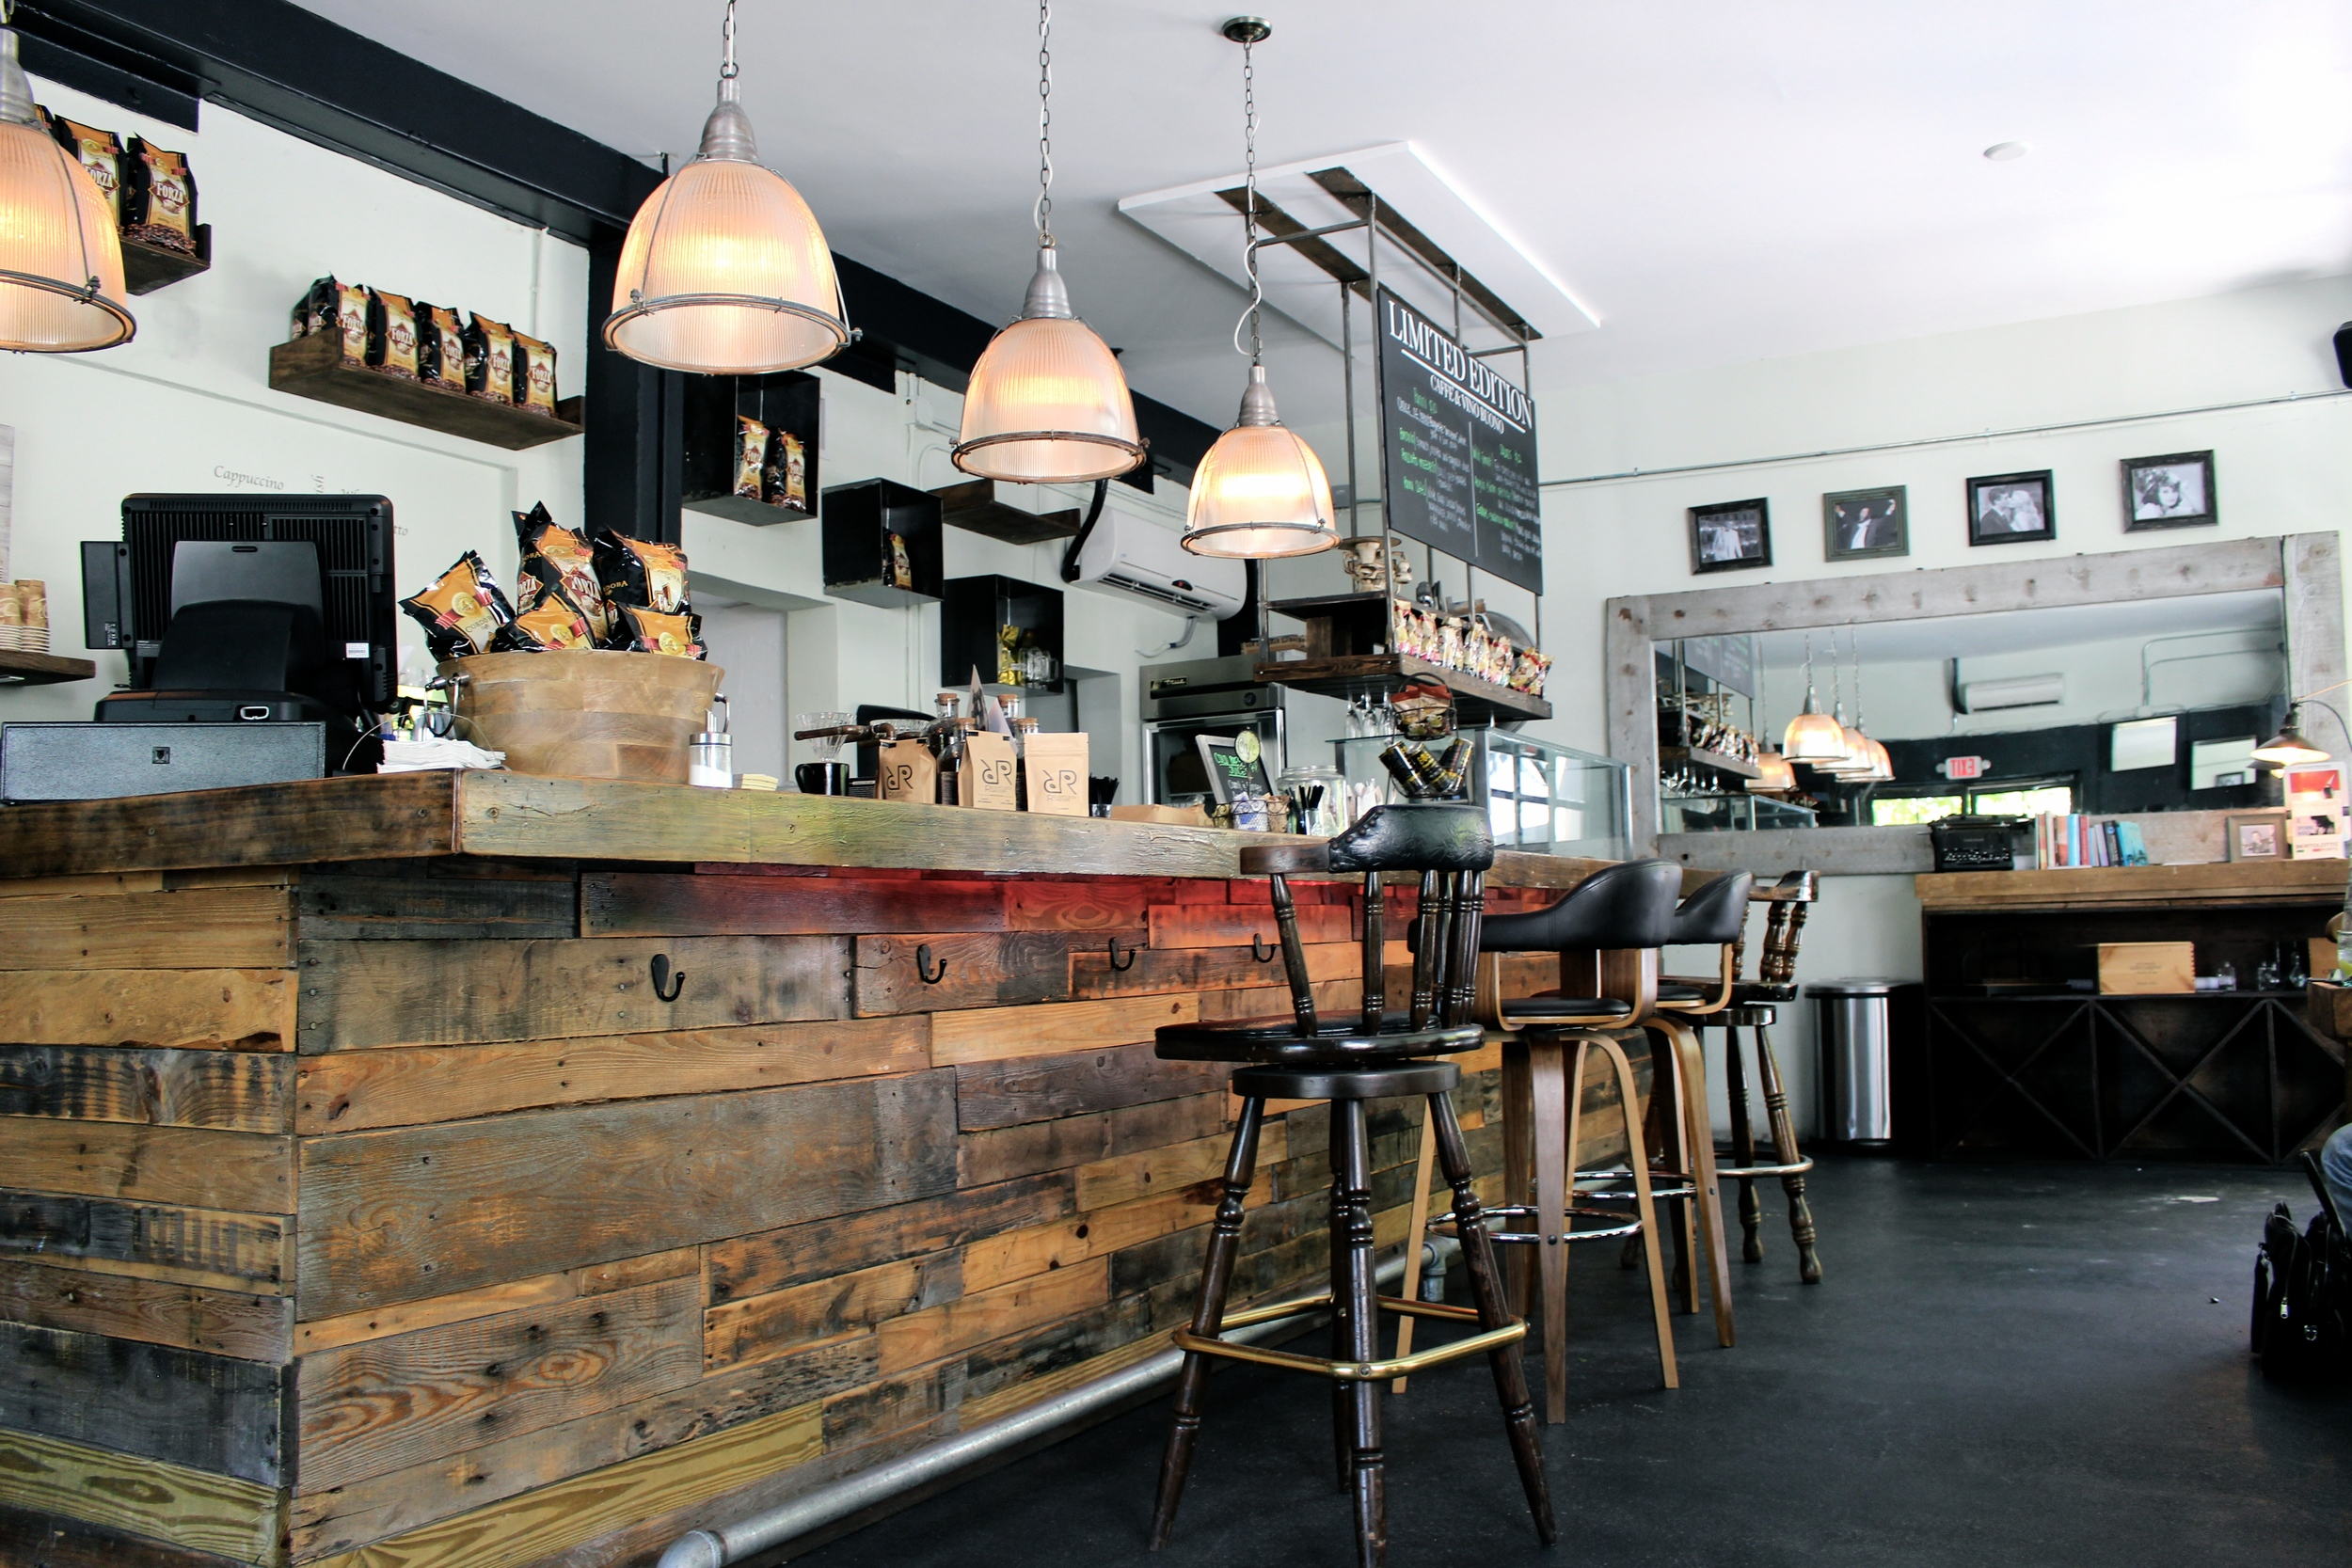 Miami S Top 10 Most Instagrammable Coffee Shops Cafes Runaway Habit